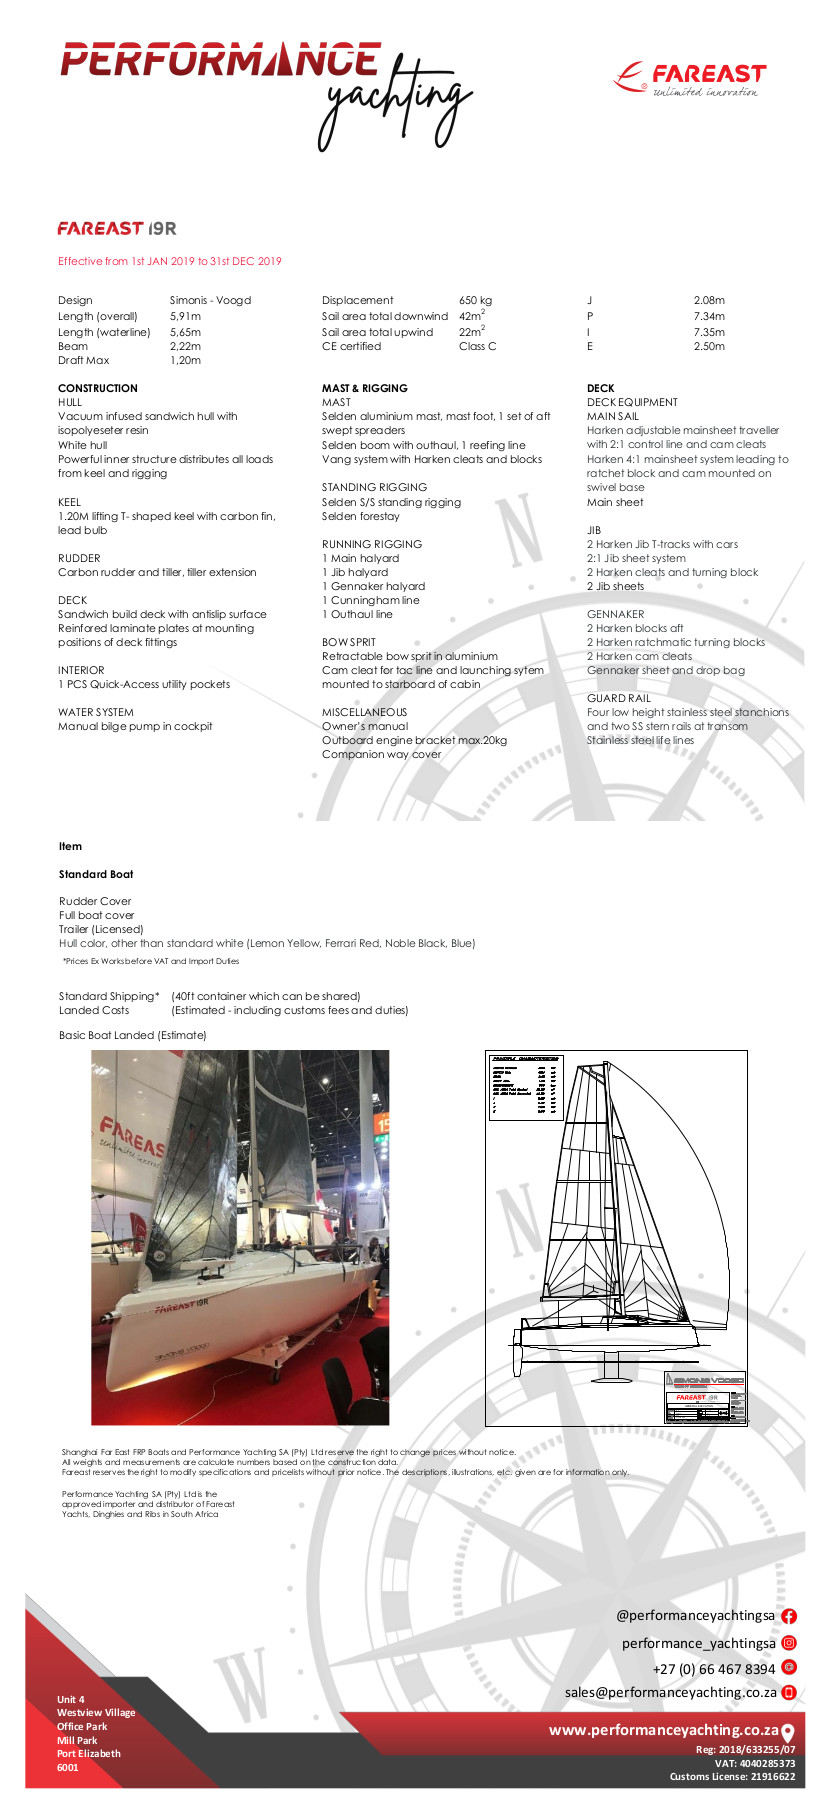 Fareast 19R Specifications